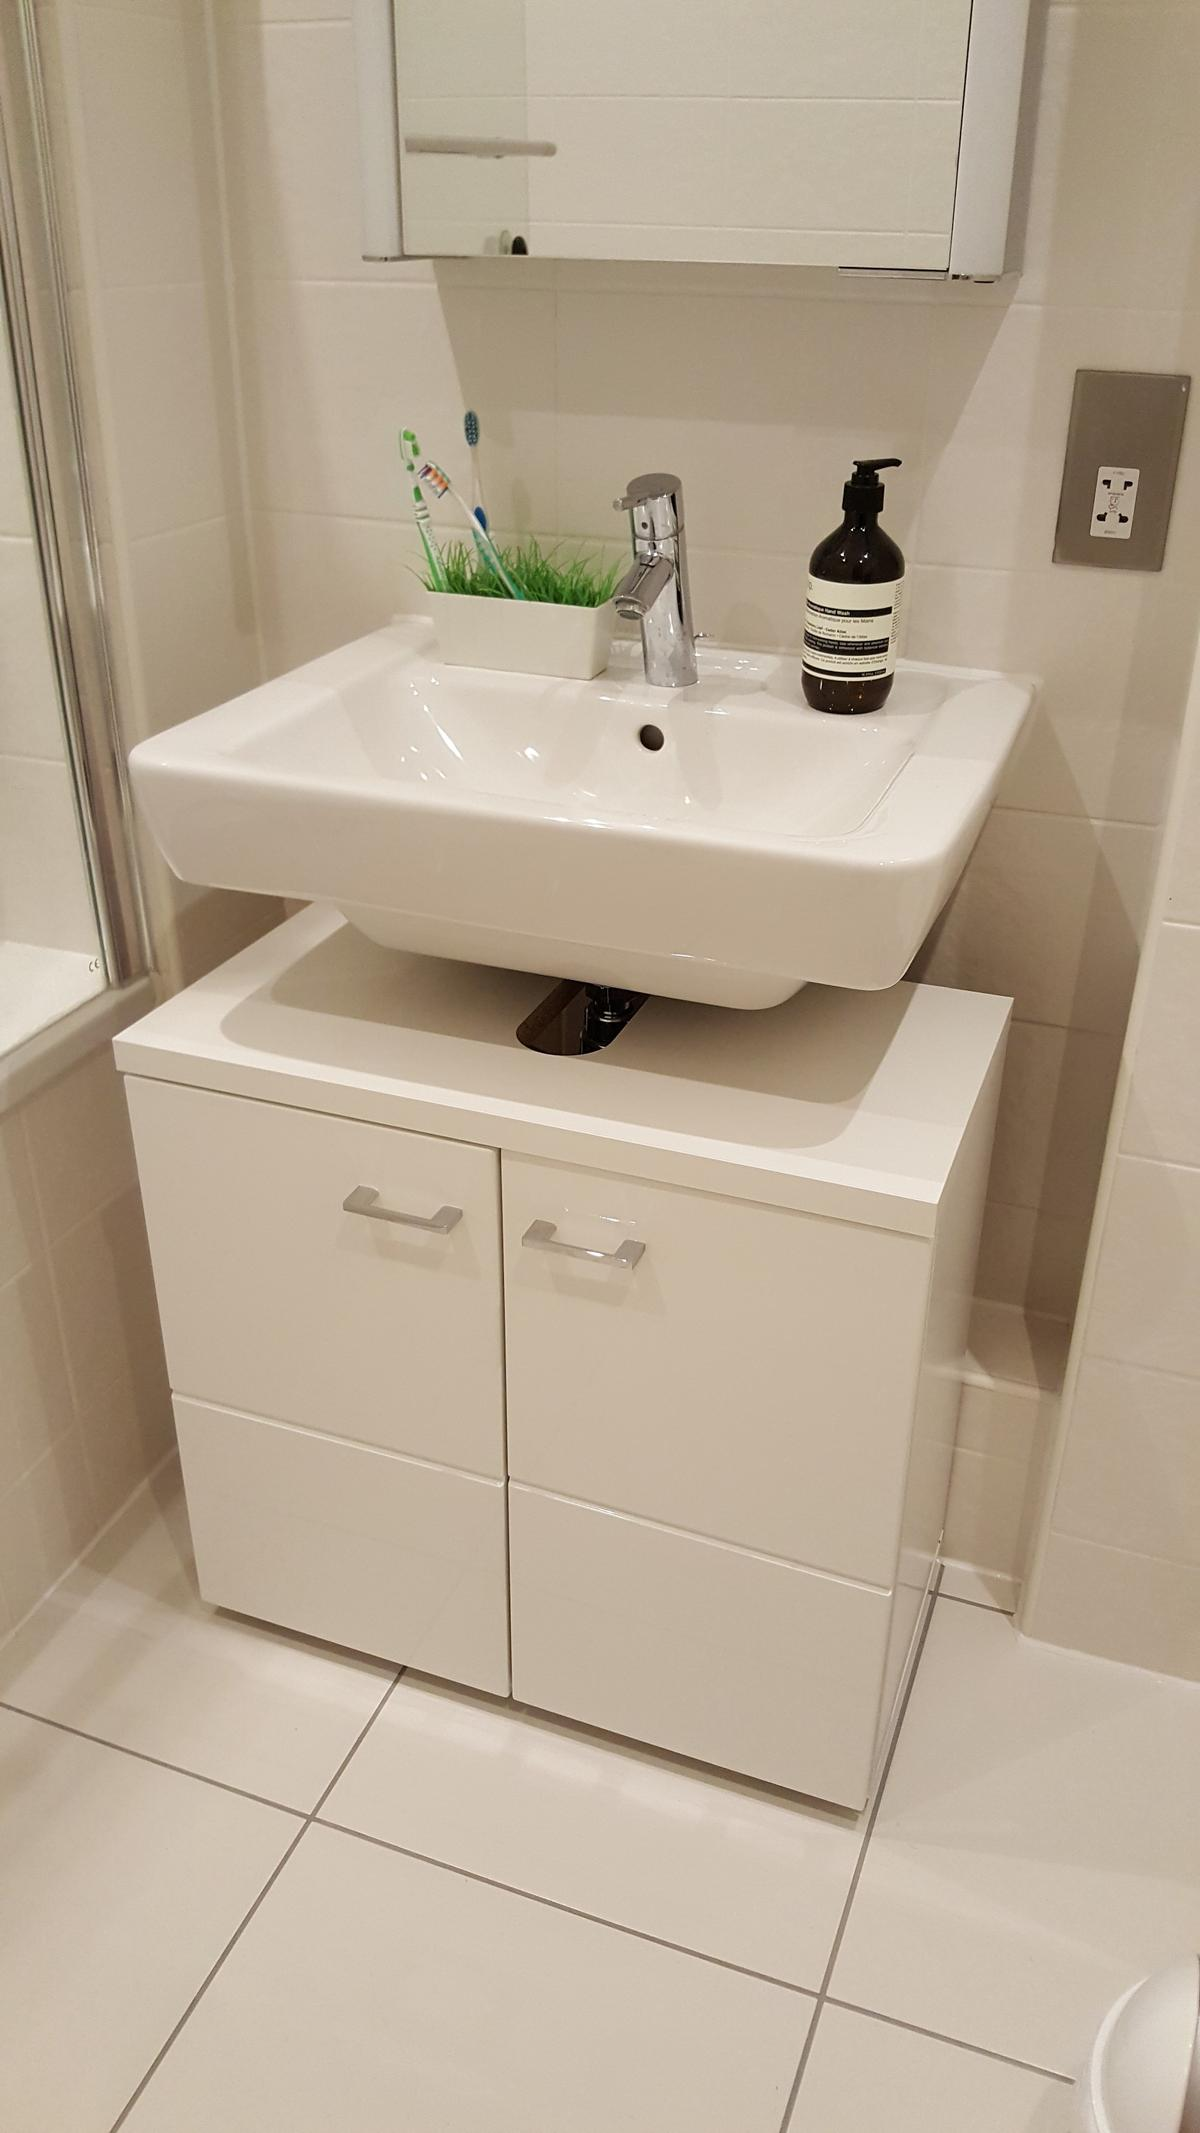 Under Sink Bathroom Cabinet 65 X 63